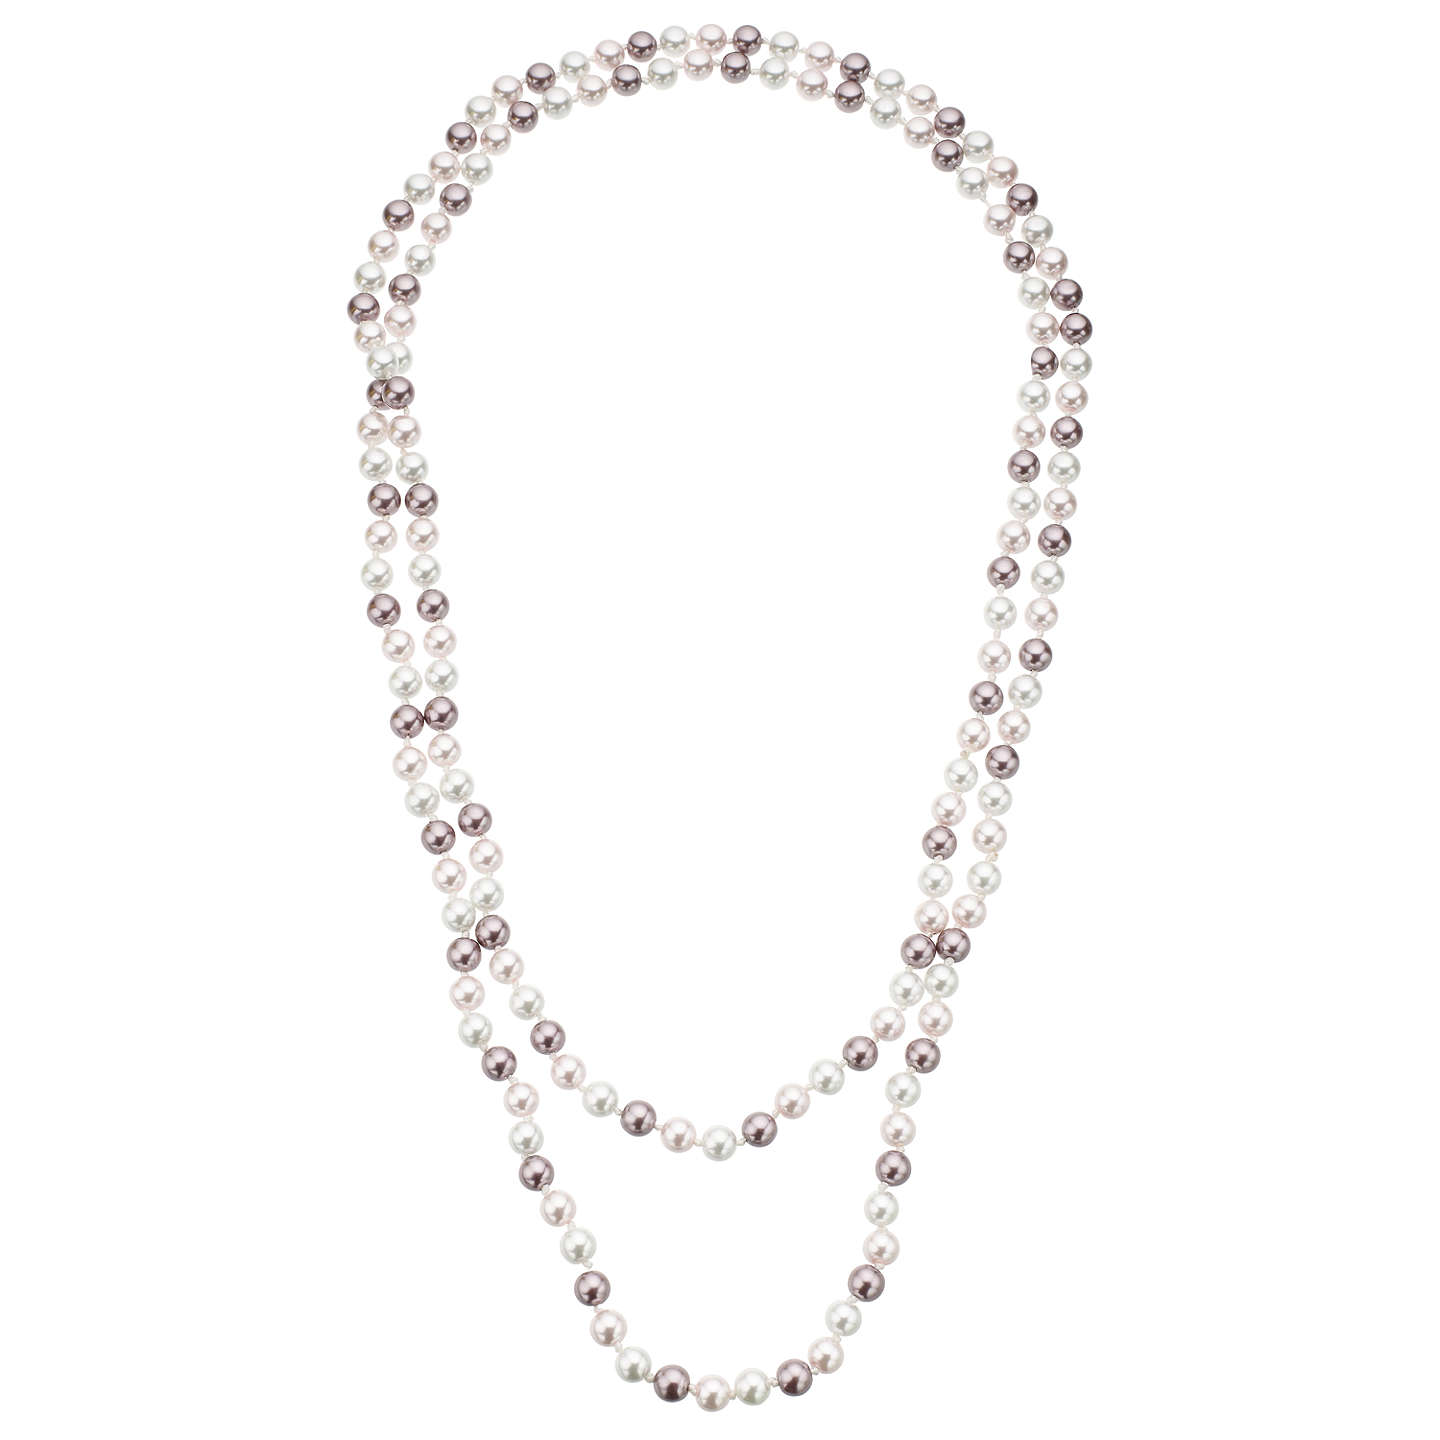 doubled inspired chanel shop june faux necklace designs sablan pearl design main classic